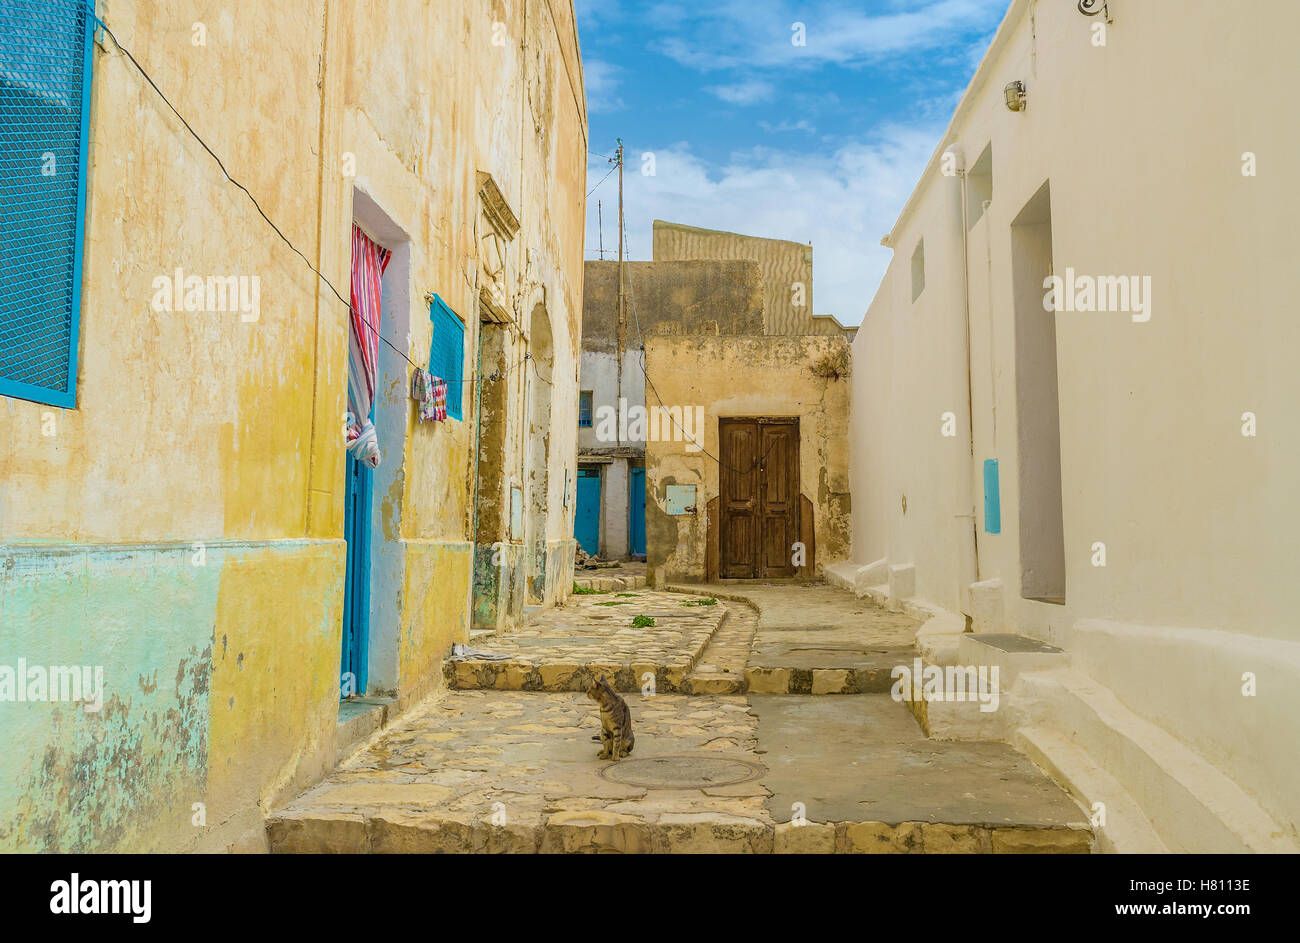 The small yard in old residential neighborhood of El Kef with crumbling walls and wooden doors, Tunisia. - Stock Image